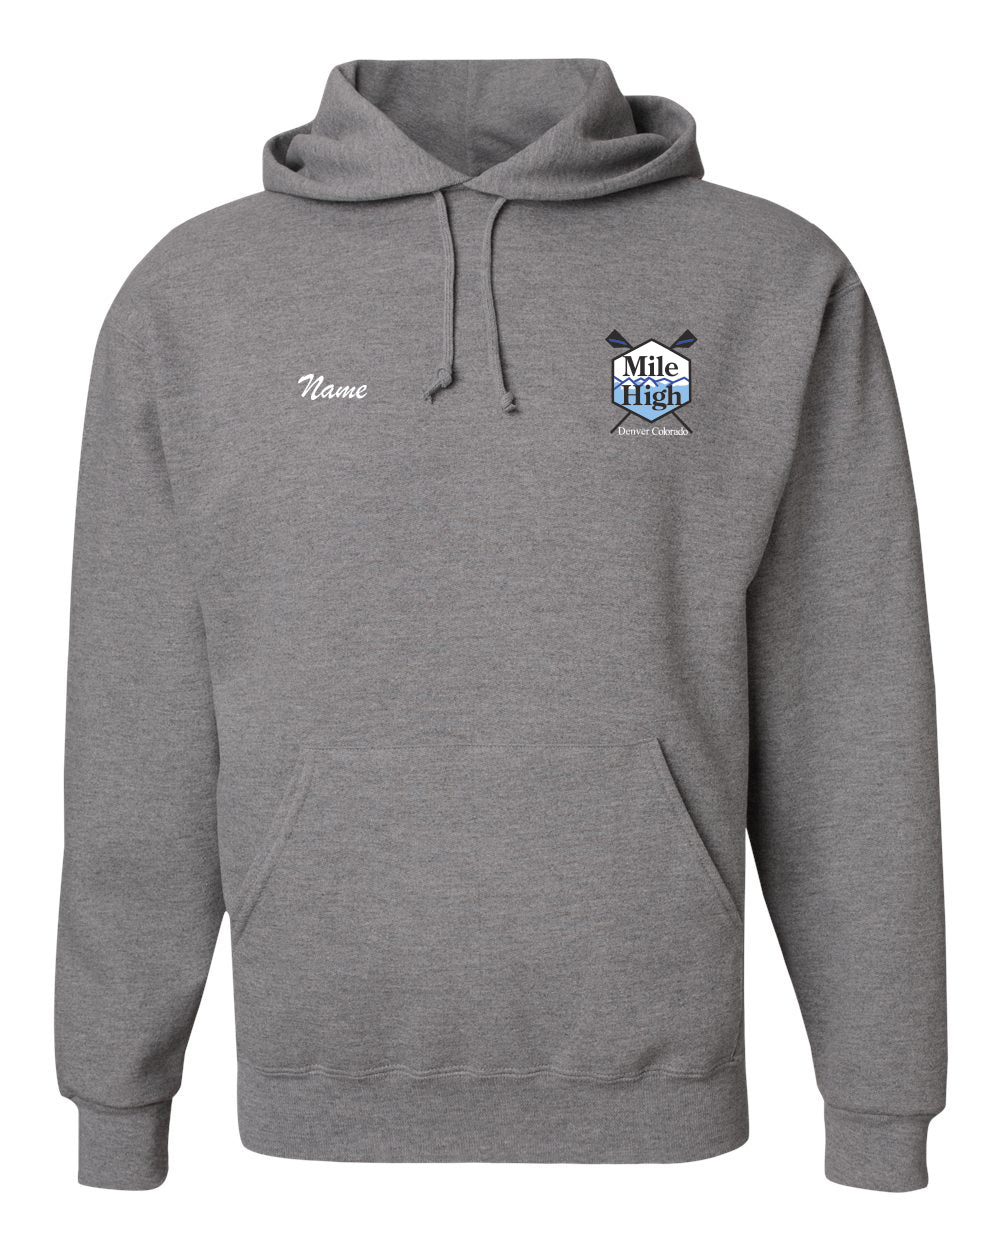 50/50 Hooded Mile High RC Pullover Sweatshirt